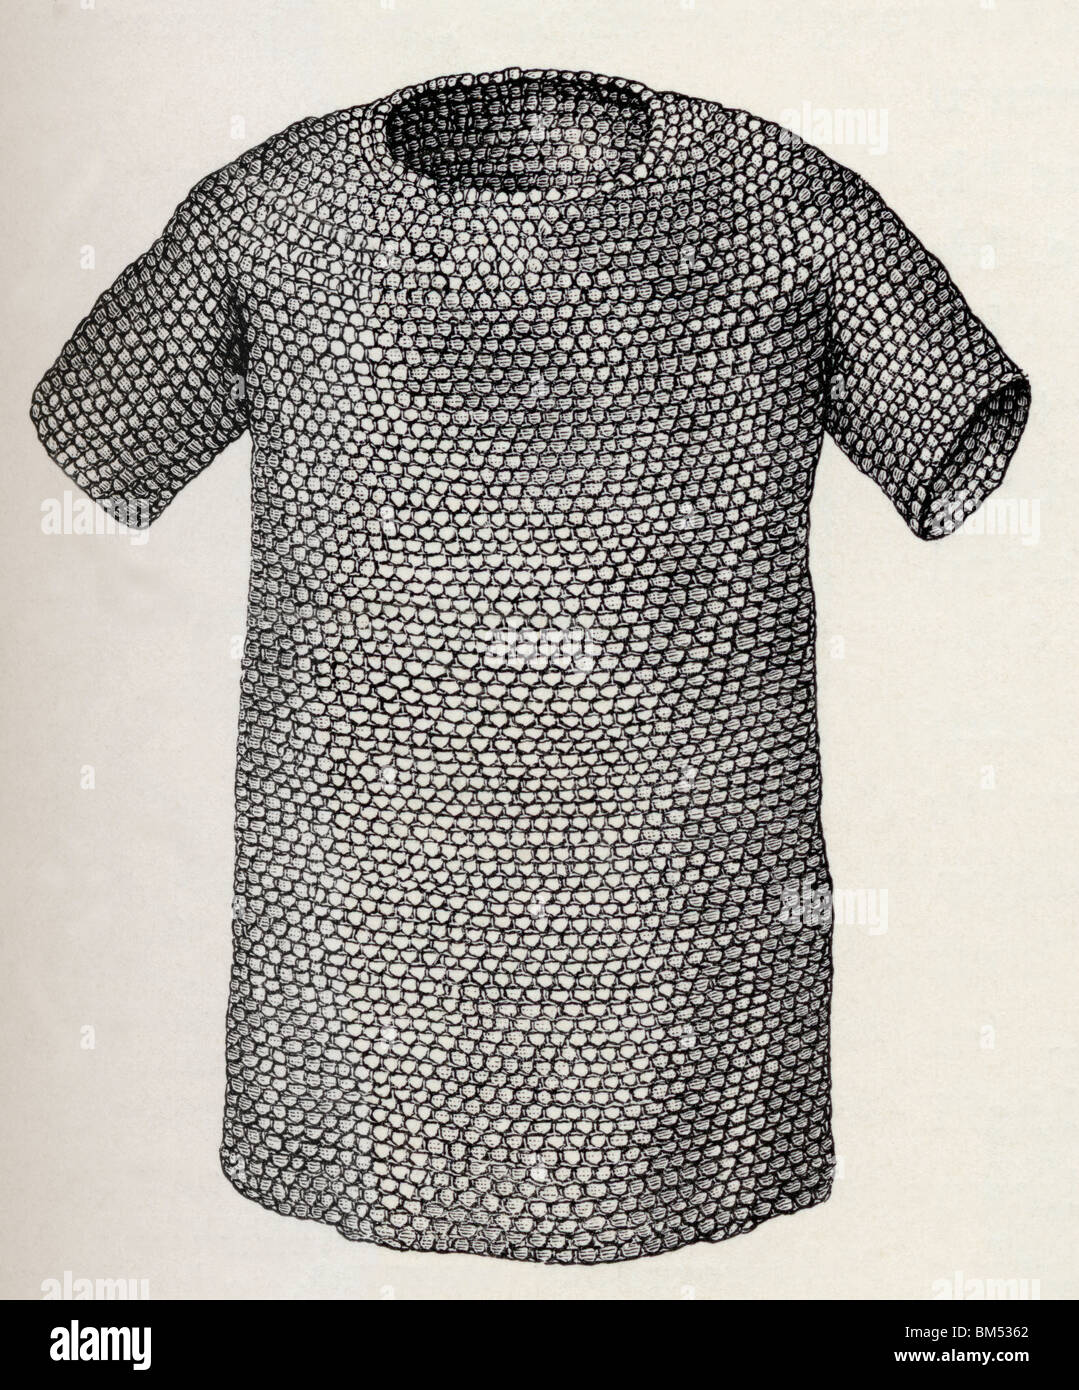 Jutish or Danish Mailcoat dating from before A.D. 450. - Stock Image